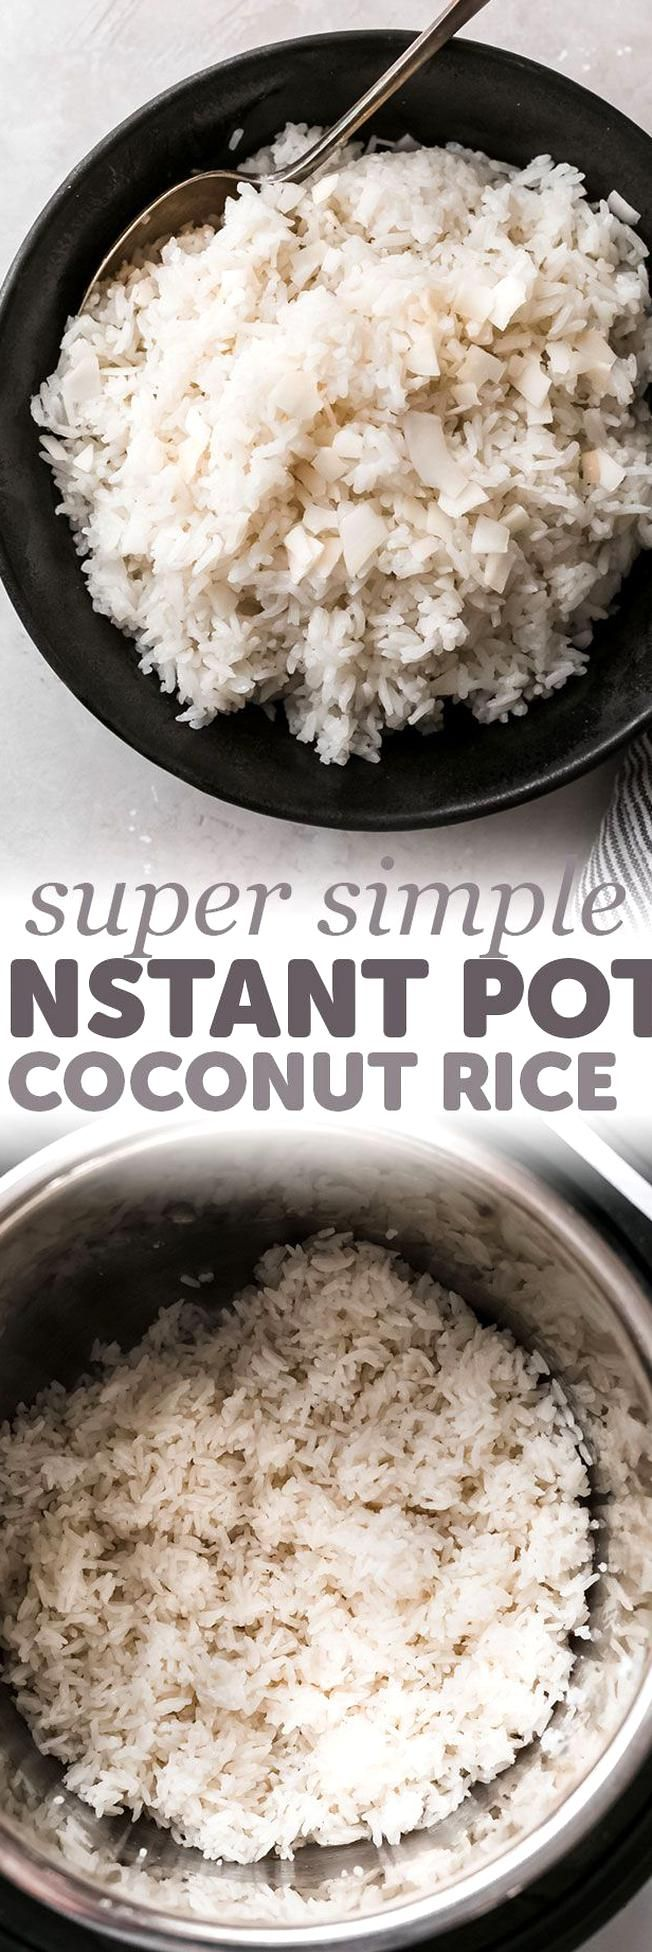 5 Ingredient Instant Pot Coconut Rice - Learn how to make coconut rice in the instant pot A simple recipe that takes about 5 minutes to toss together and goes with so many different types of cuisines! #instantpot #instantpotrecipes #instantpotcoconutrice #coconutrice #jasminerice #jasminecoconutrice  Littlespicejar